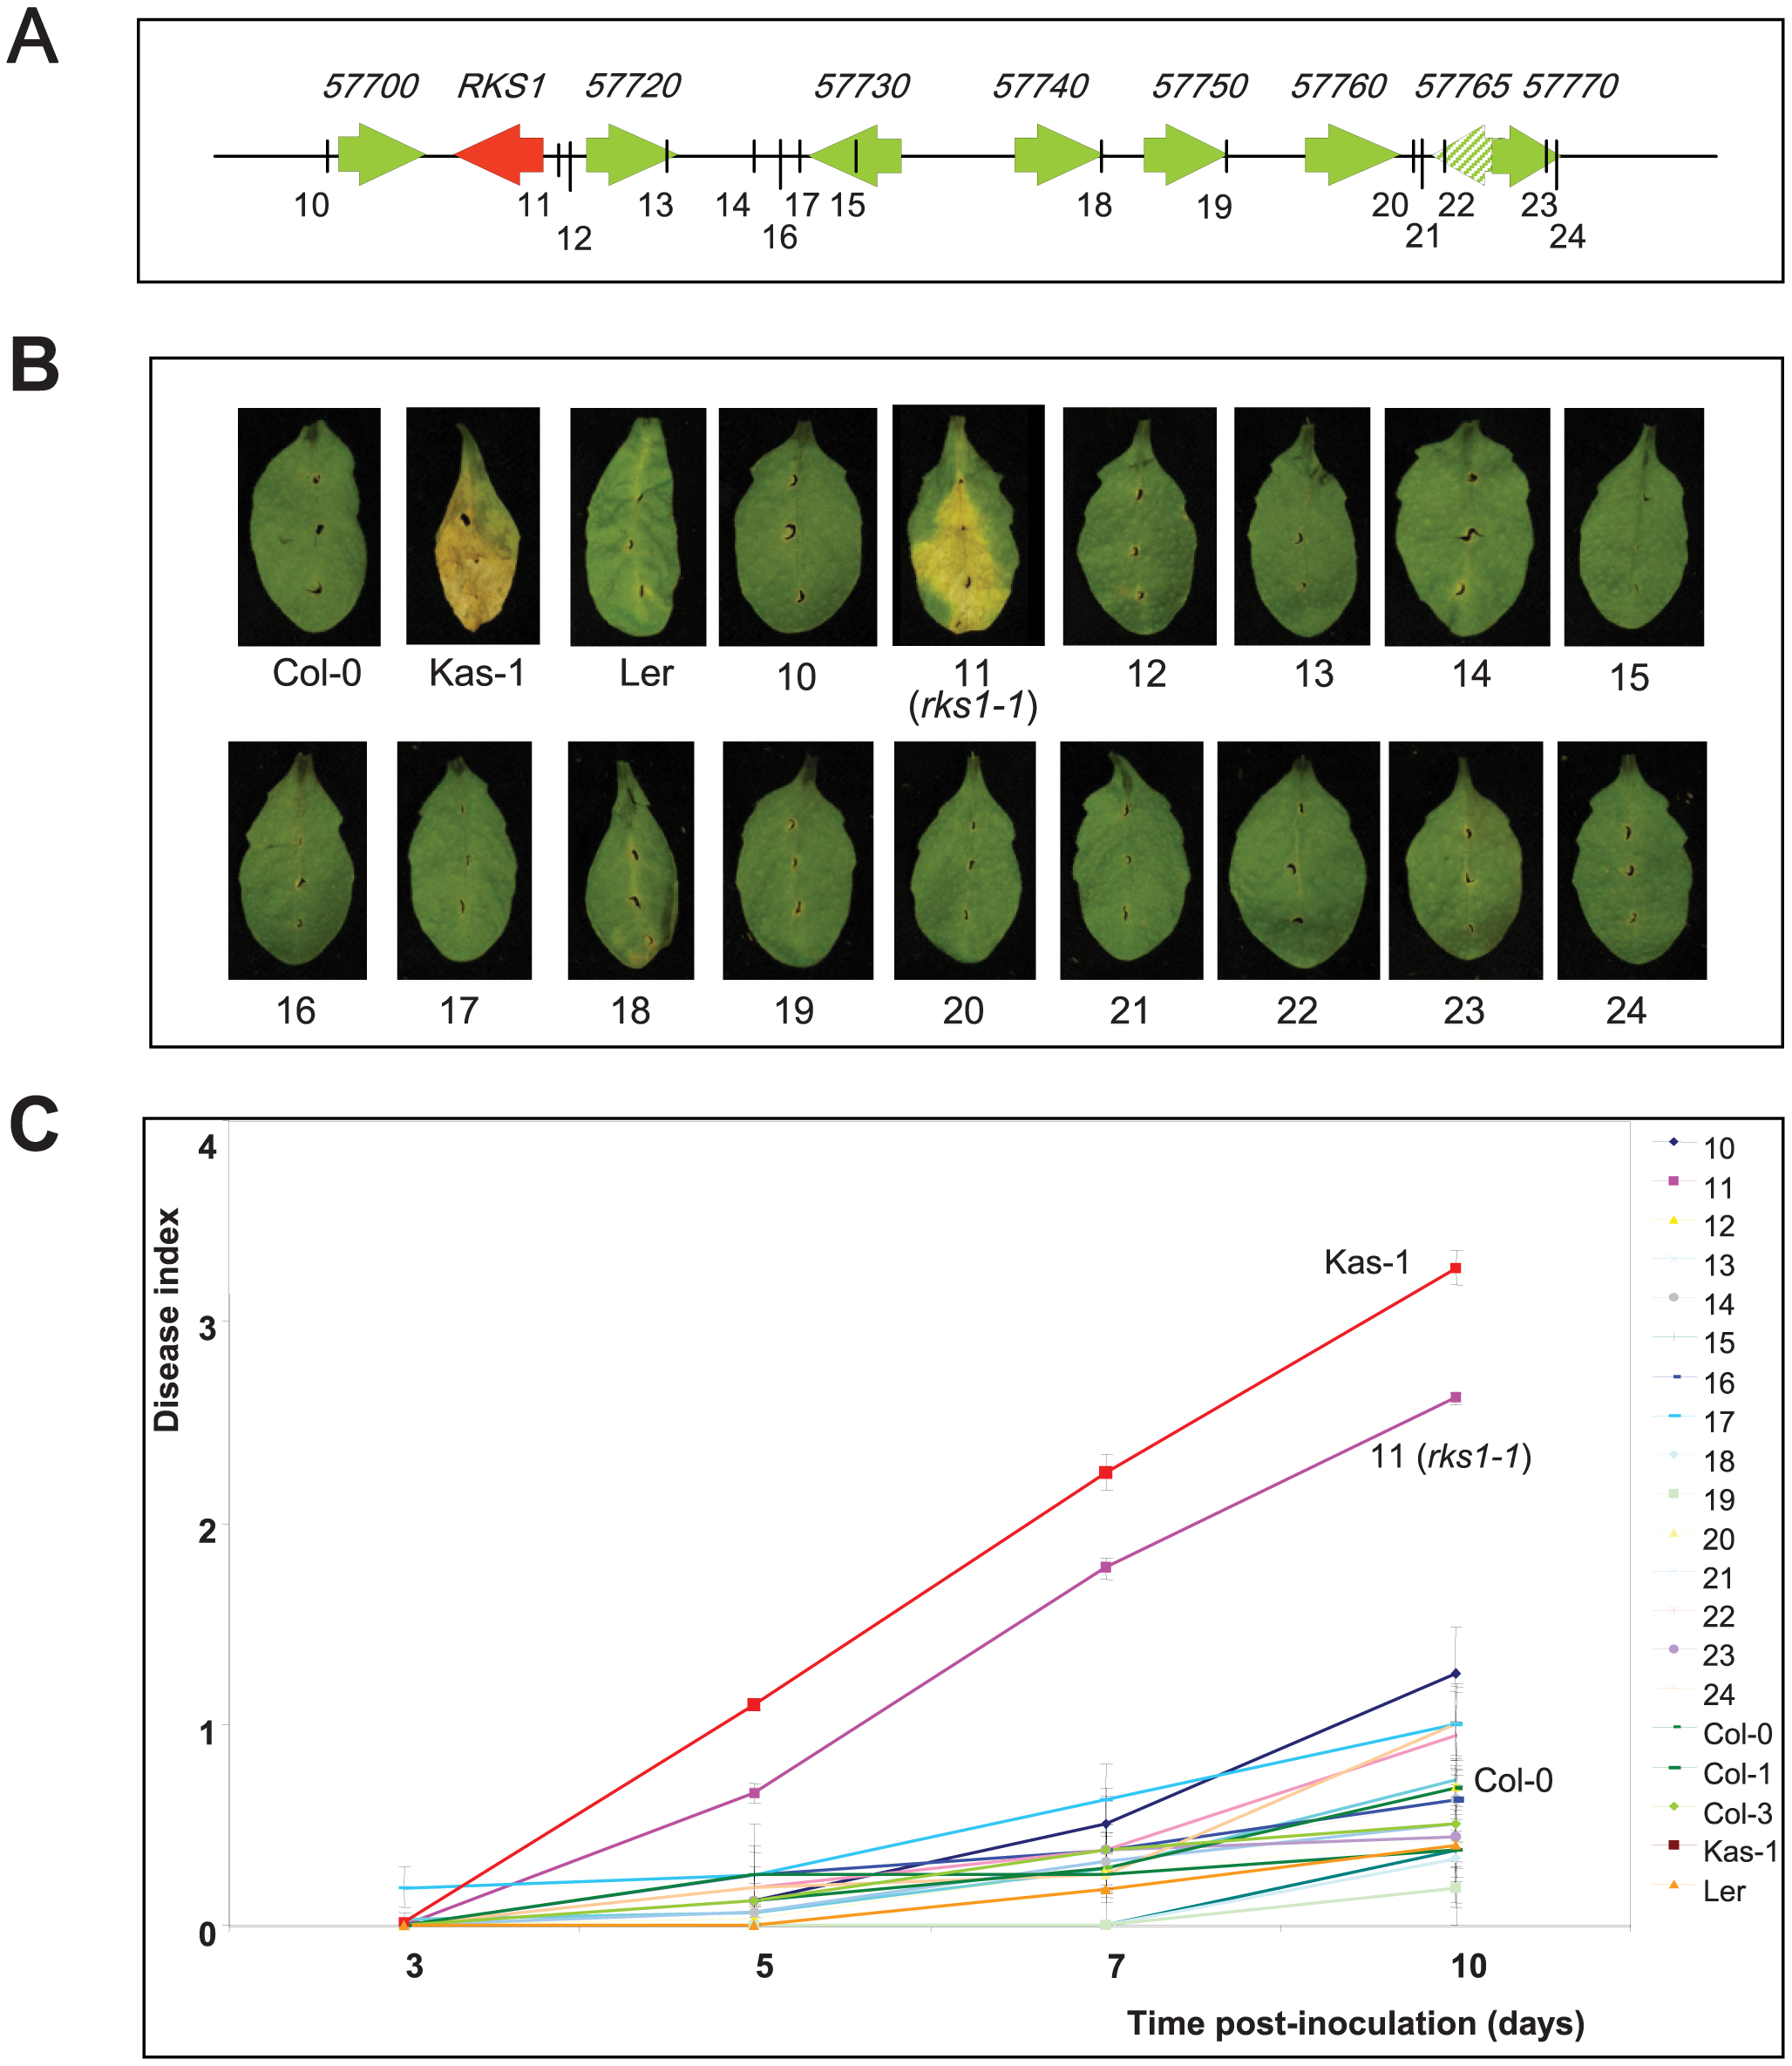 Phenotypic analysis of insertional mutants corresponding to genes of the <i>QRX3</i> locus.